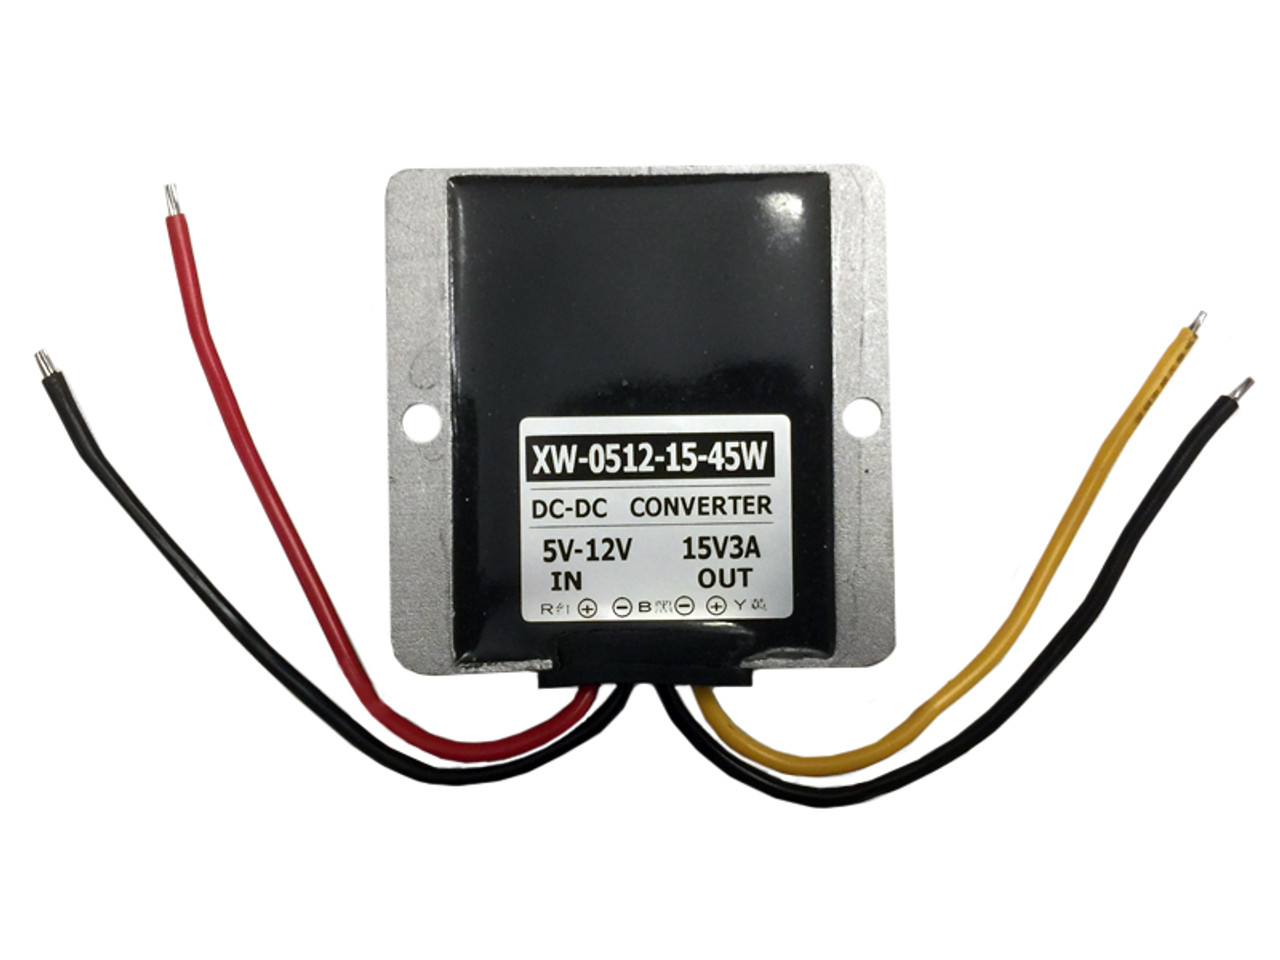 Led Drl Relay Wiring Harness Voltage Booster 9005 - Wiring ... Xenondepot Pwm Wiring Diagram on